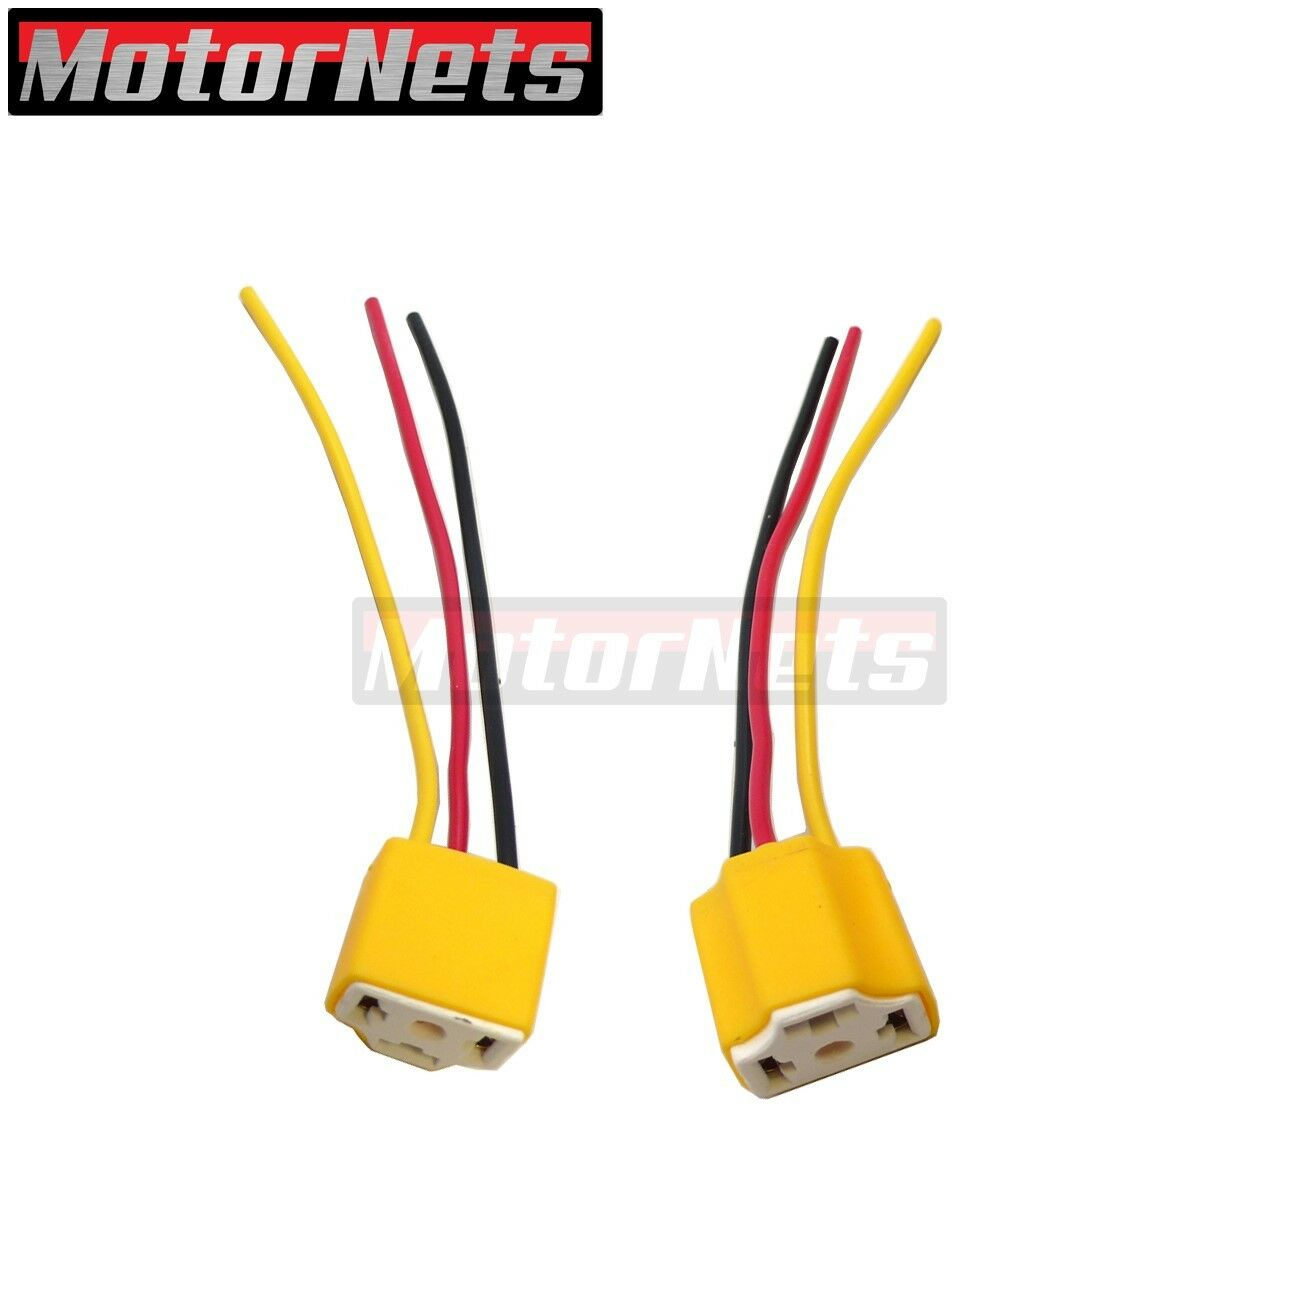 Gm 3 Prong Headlight Wiring Electrical Diagrams Three Diagram 2x H4 9003 Bulb Plug Lamp Socket Connector Wire Harness